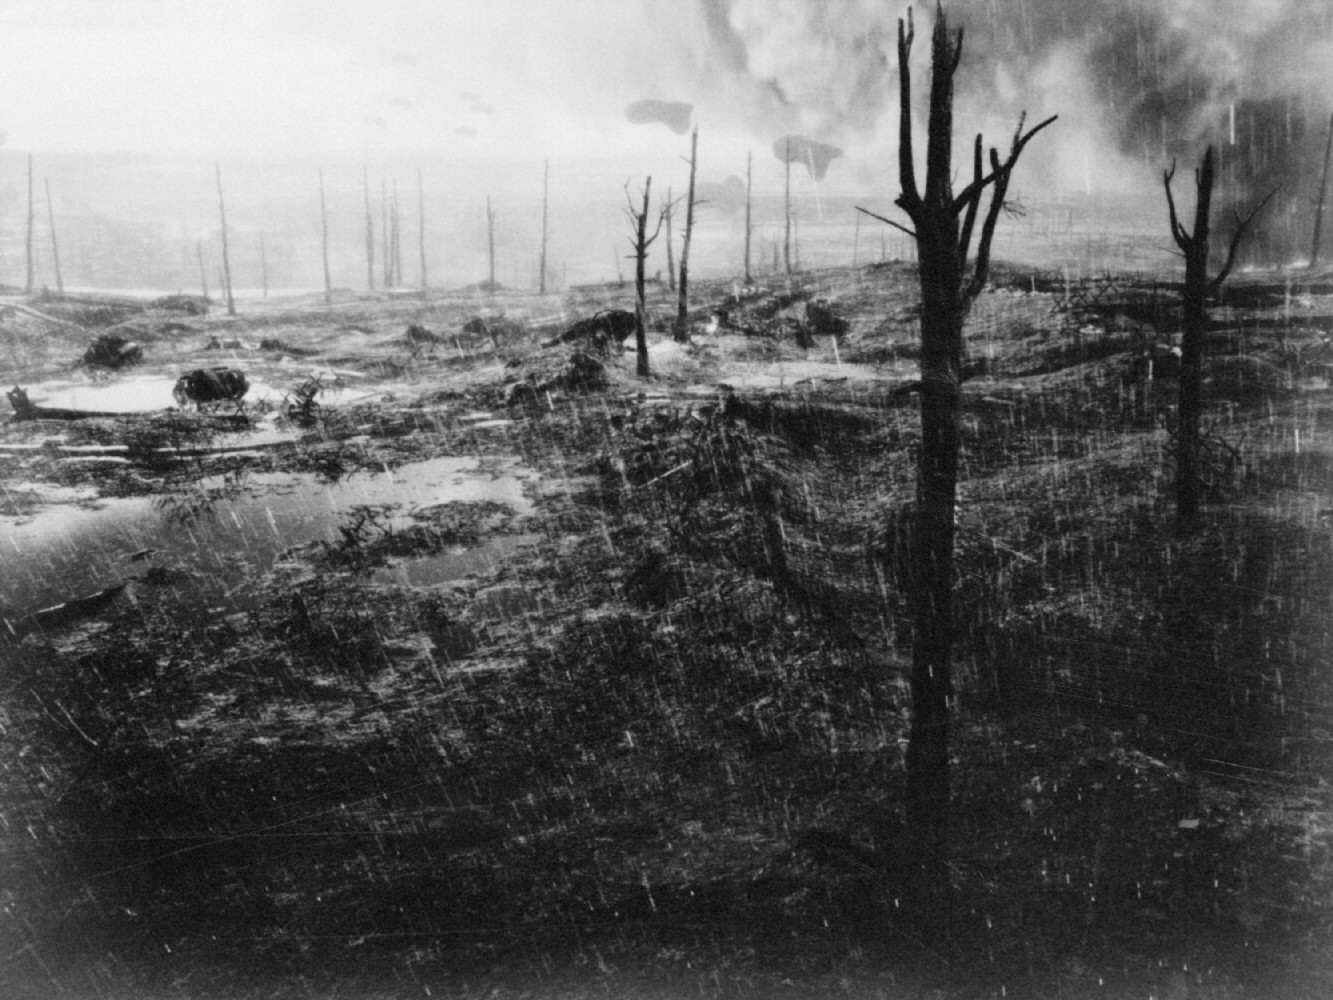 Battlefield 1 Screens Look Hauntingly Realistic With Black & White Filter 93en5F4